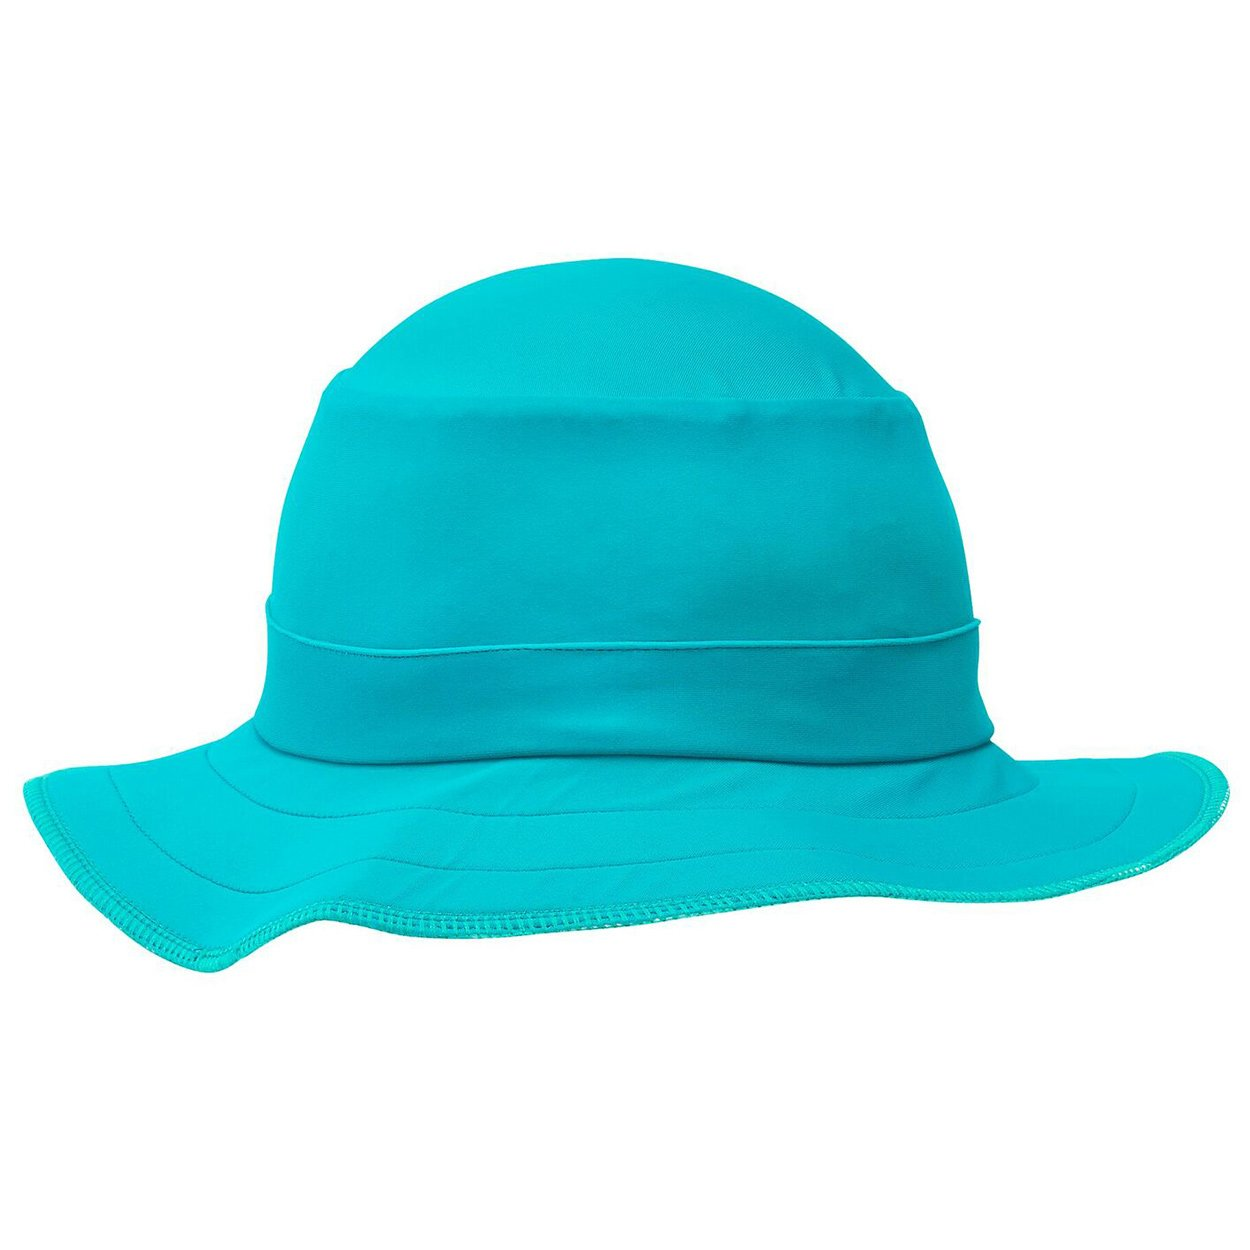 Kids Funky Bucket Hat Upf 50 By Swimlids Aqua Small Girls 2 10 Sunpoplife 2dabda2376d